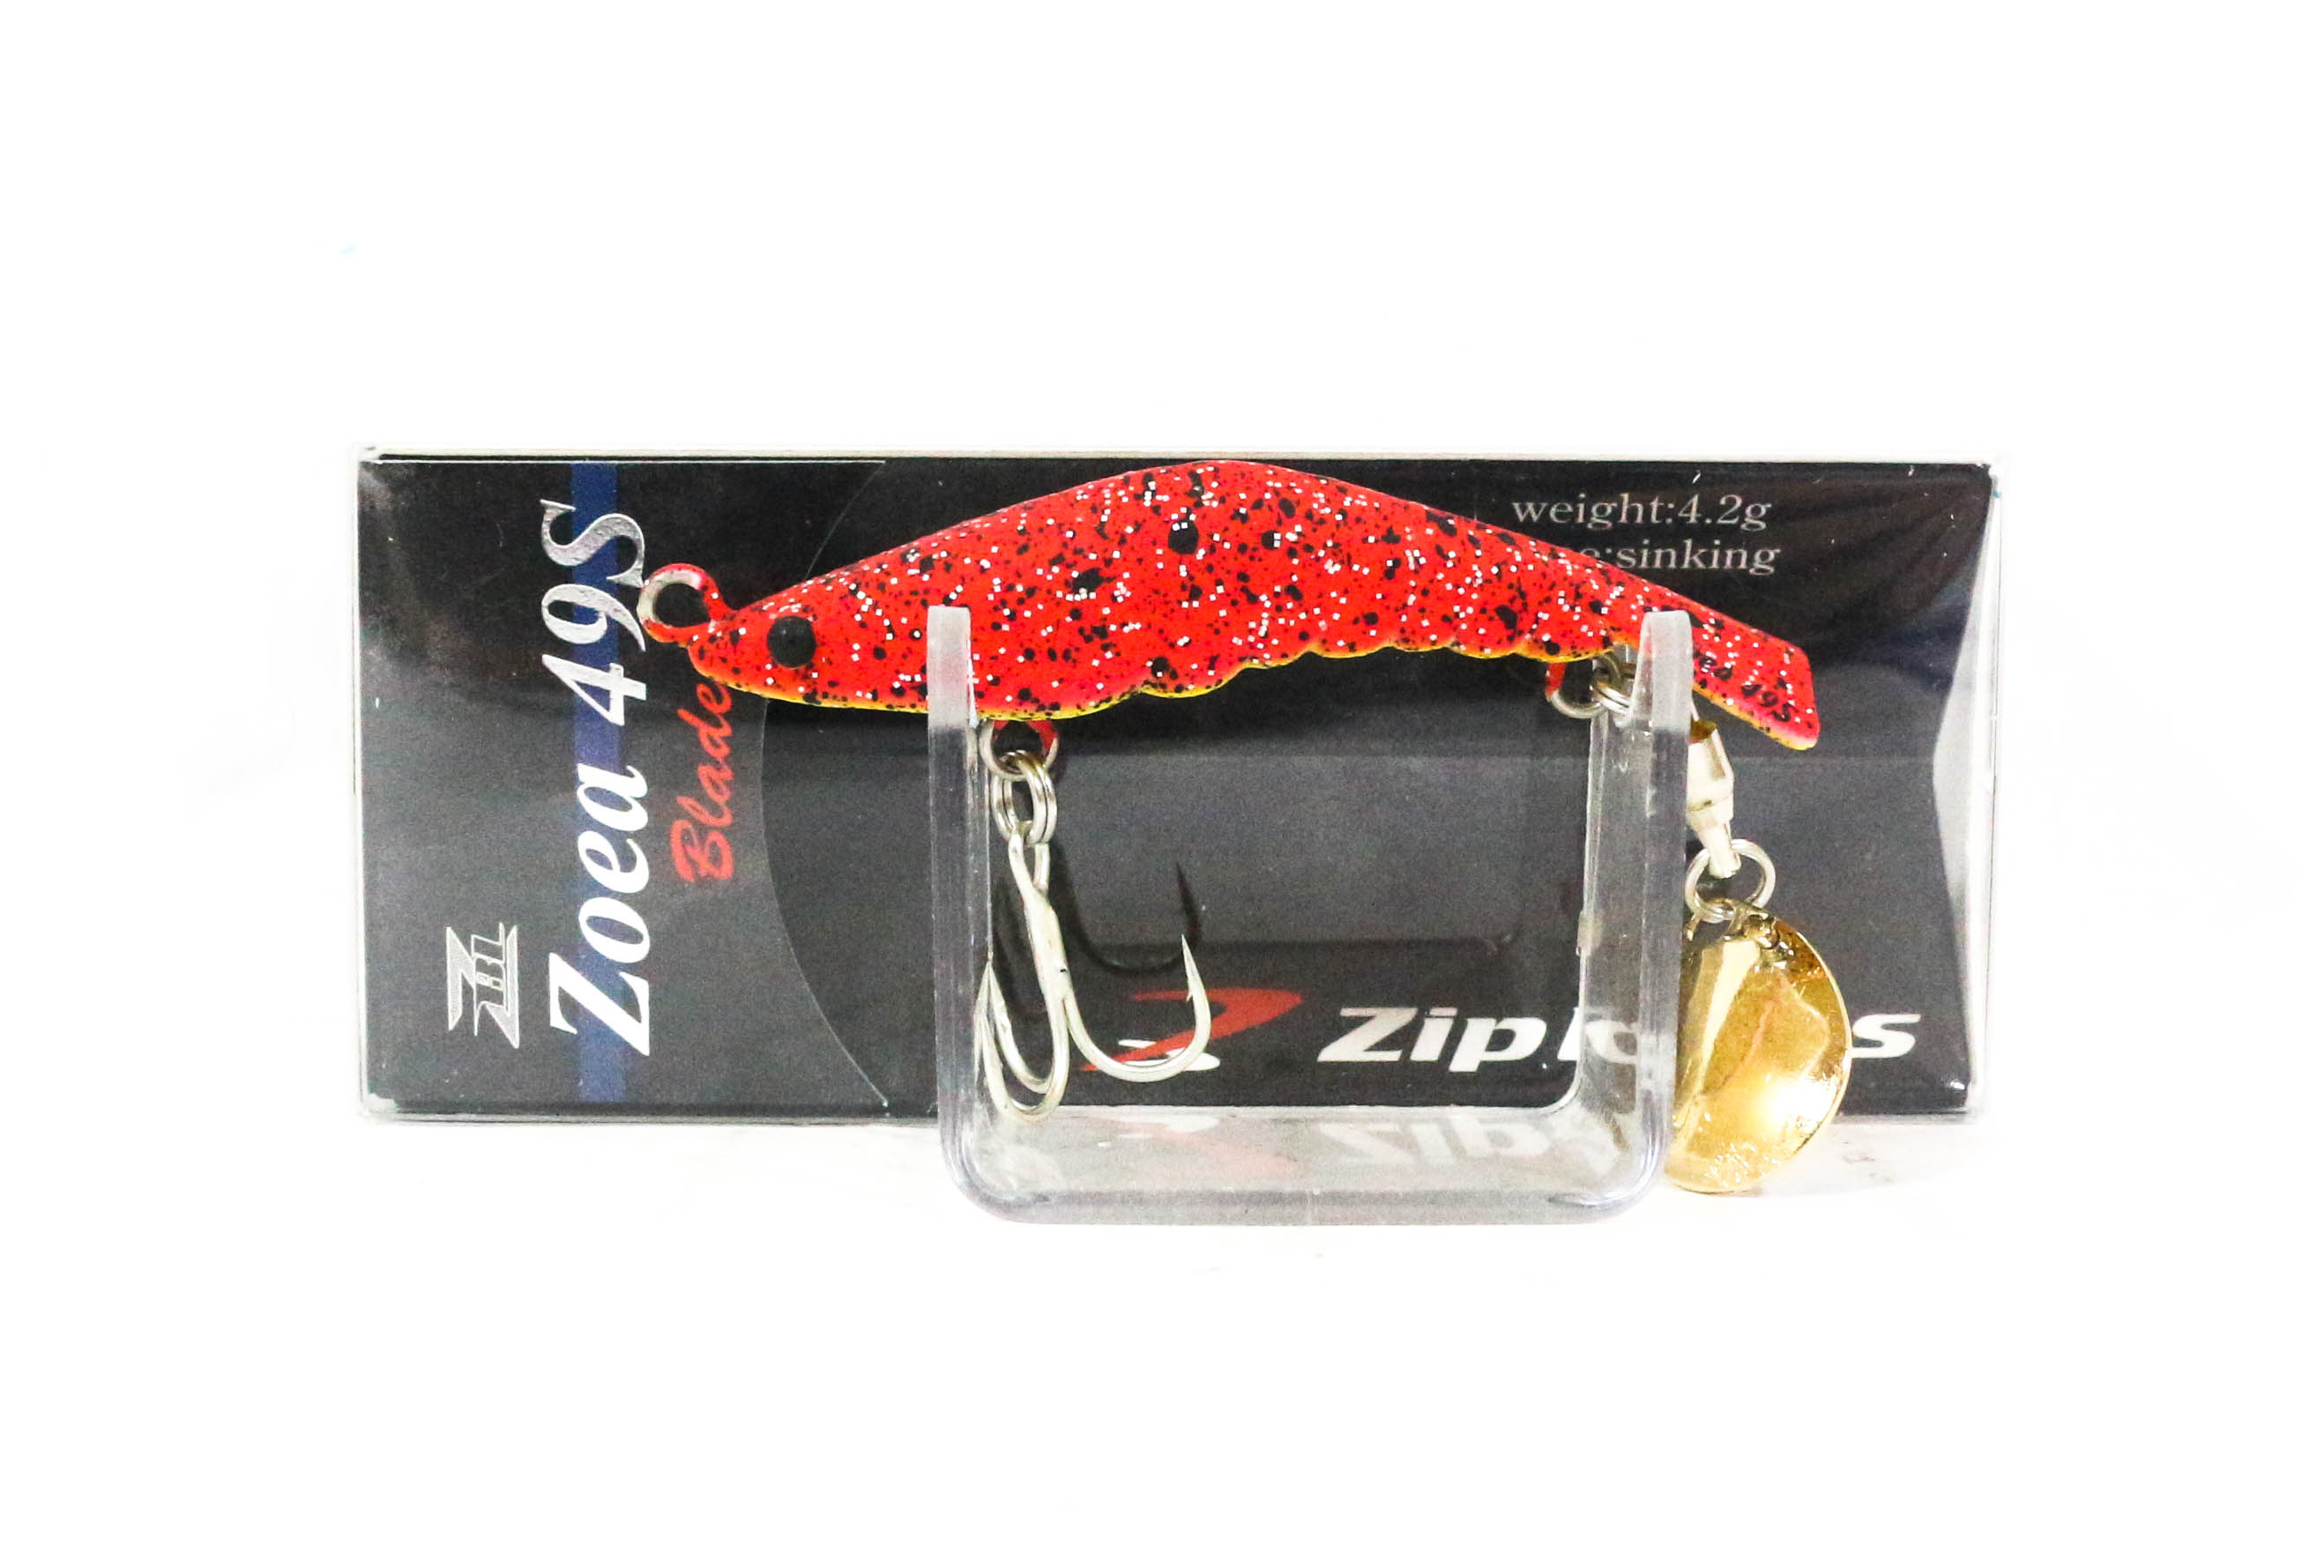 Zipbaits ZBL Zoea 49S Blade Sinking Lure 259 (7295)